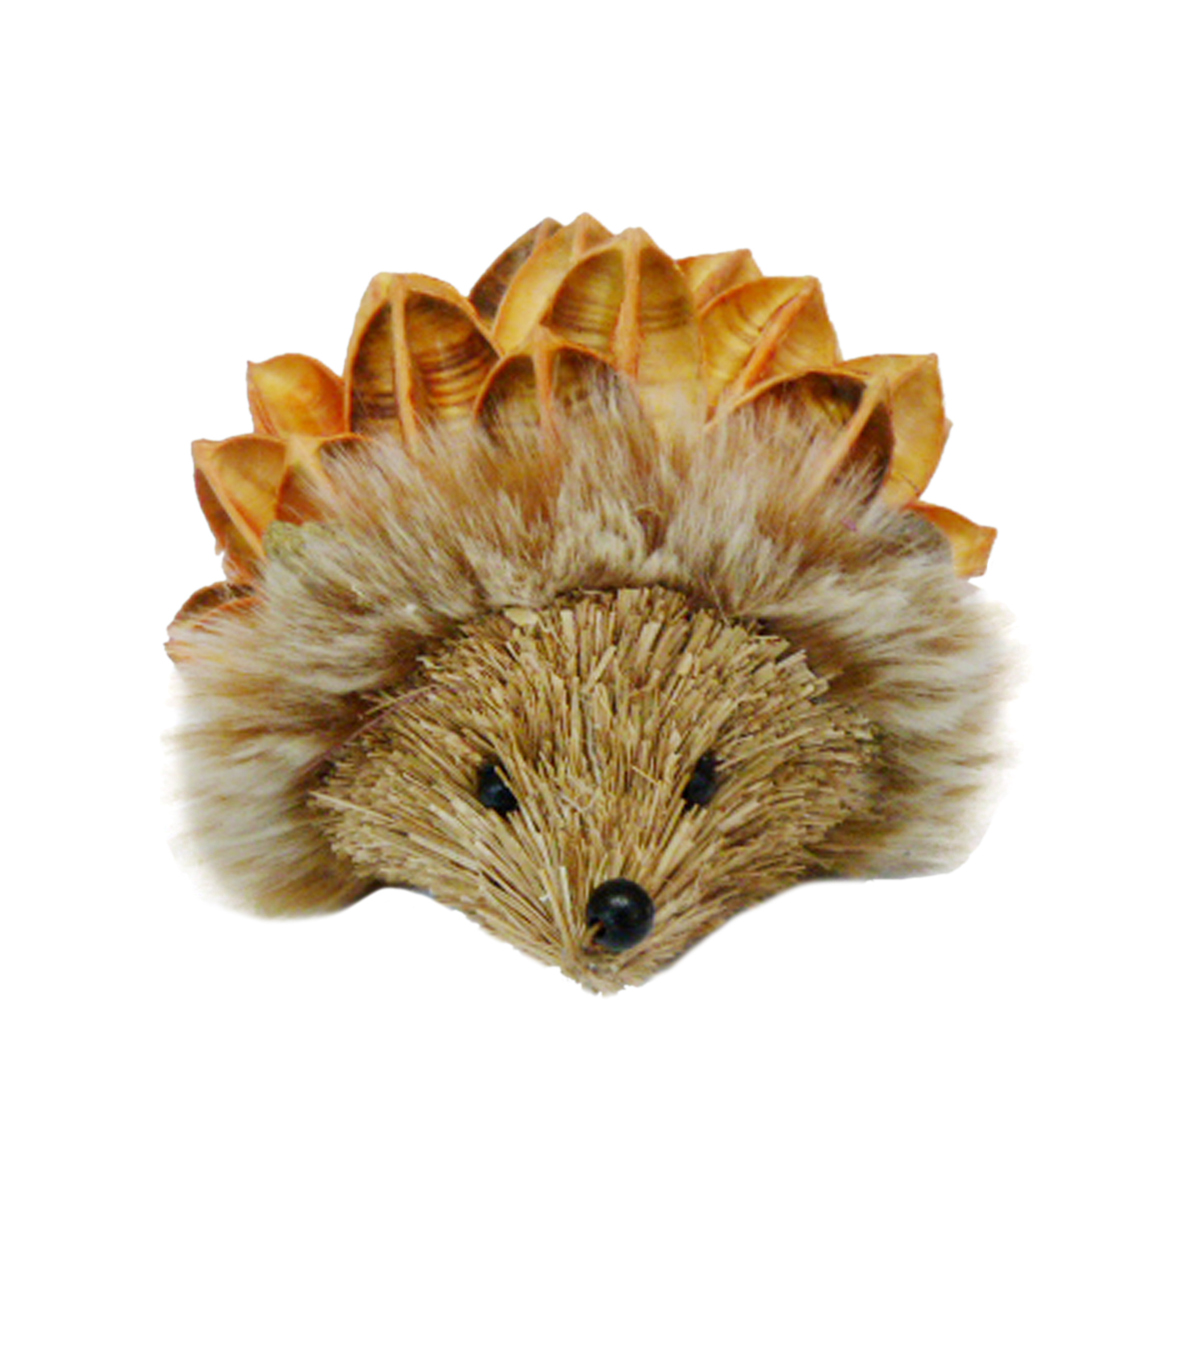 Blooming Autumn Small Woodchip Hedgehog